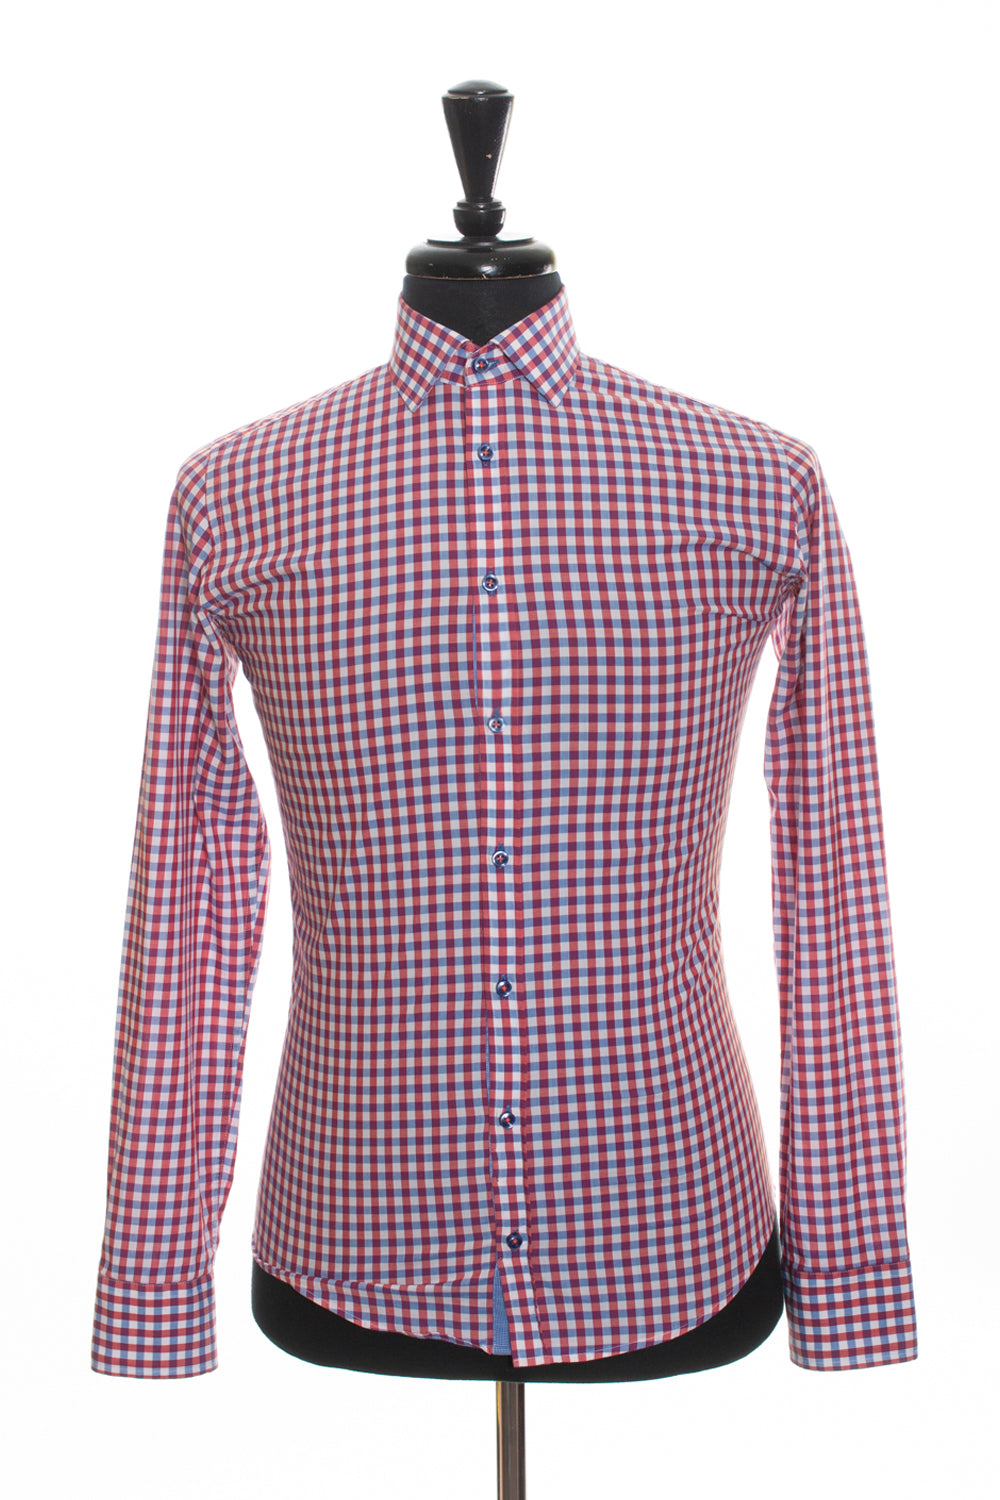 Sand Copenhagen Red Check Cotton Shirt for Luxmrkt.com Menswear Consignment Edmonton